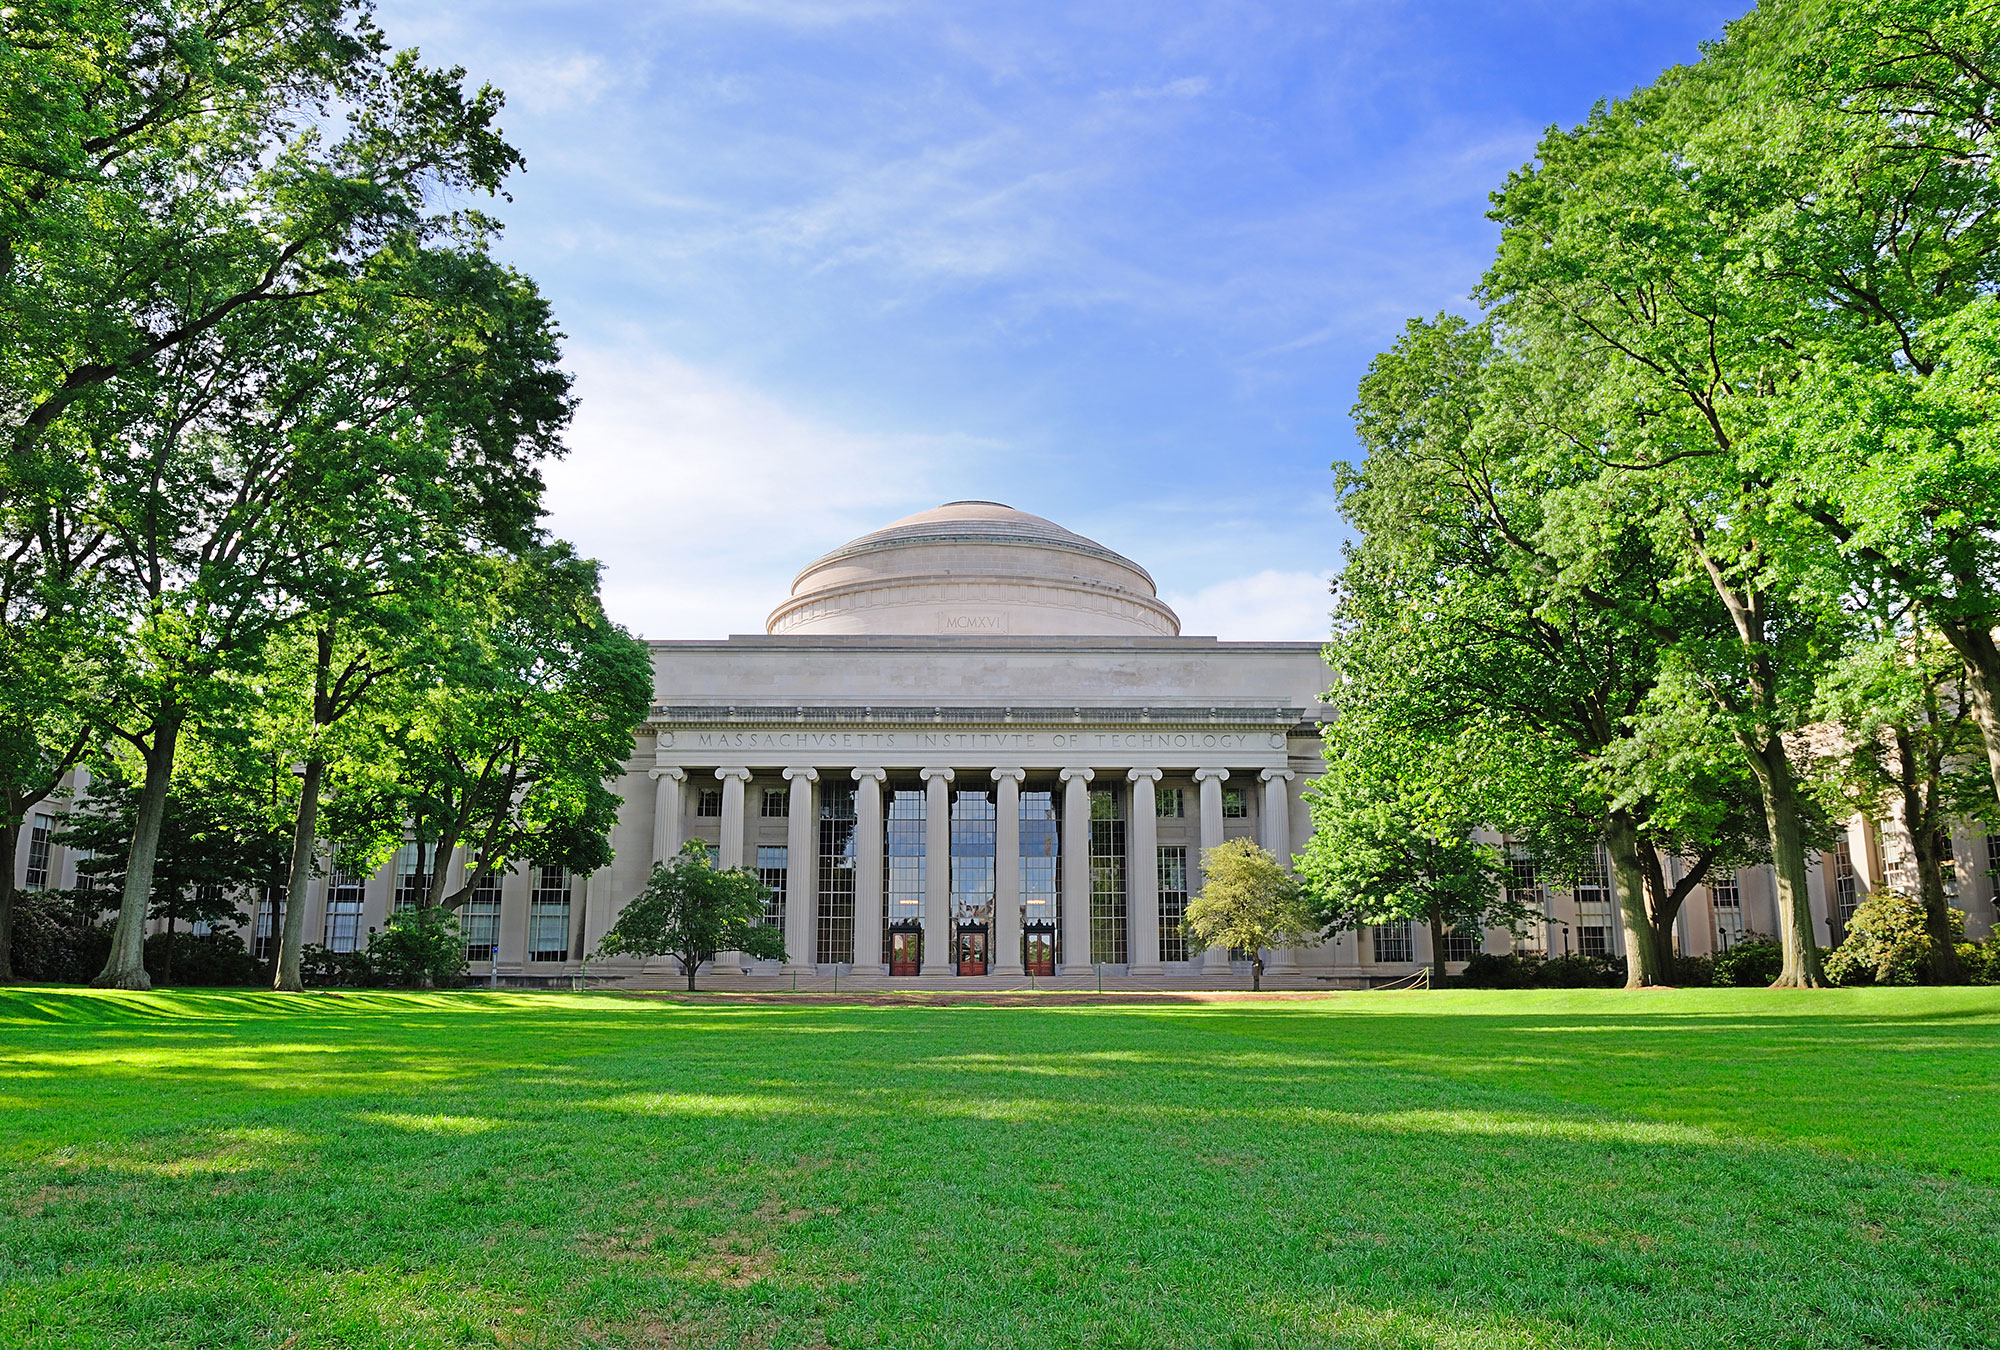 Image of MIT's campus